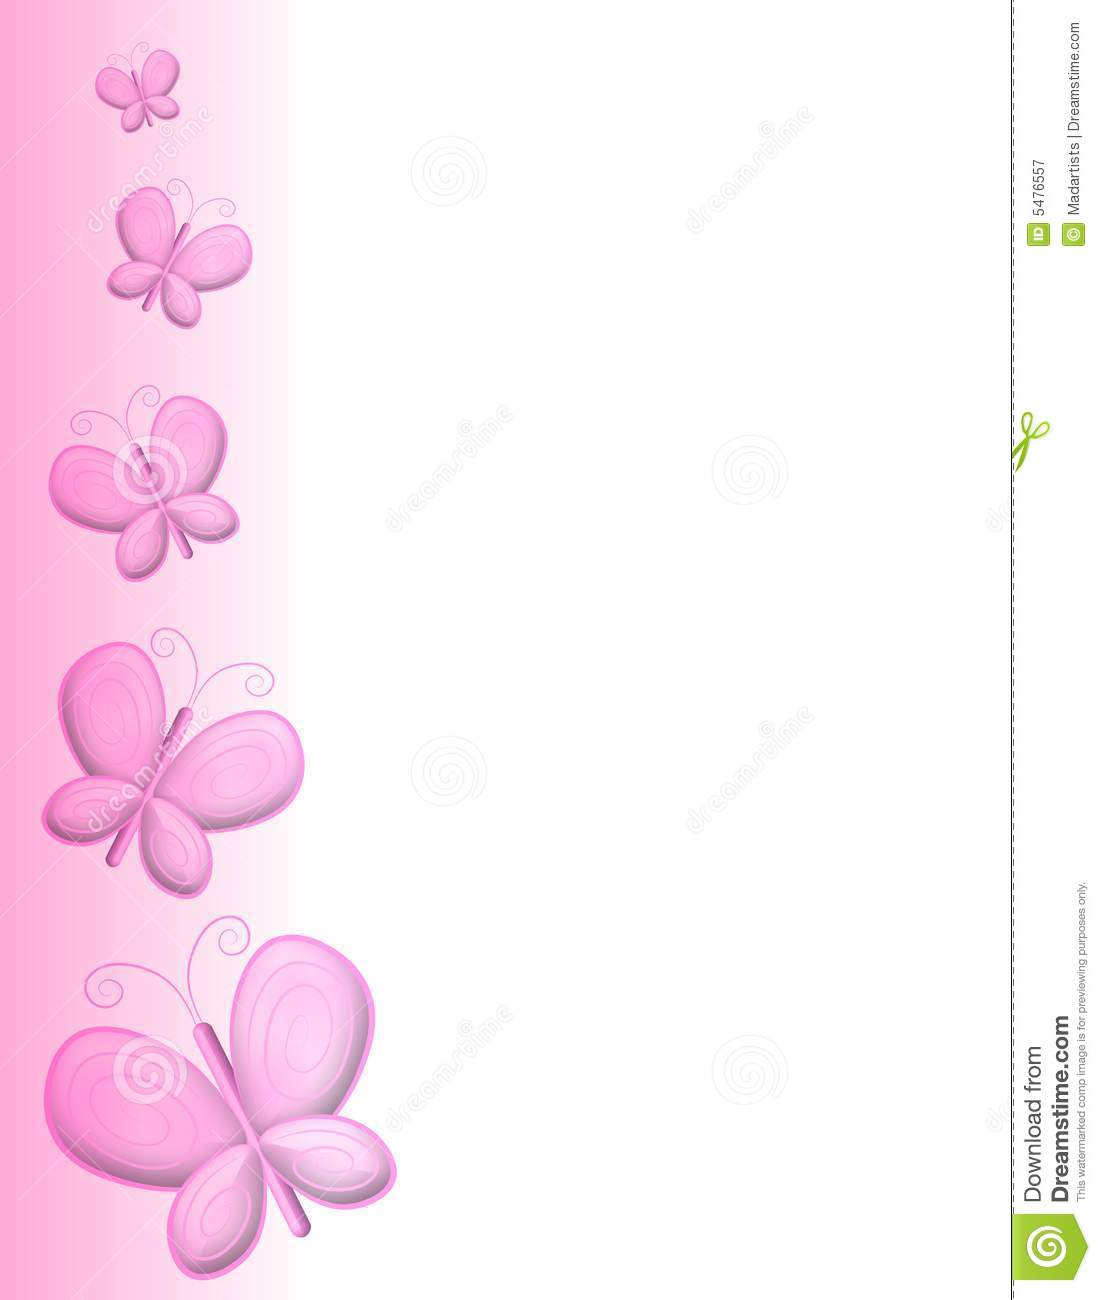 Light Pink Butterfly Clipart Pink butterfly page border